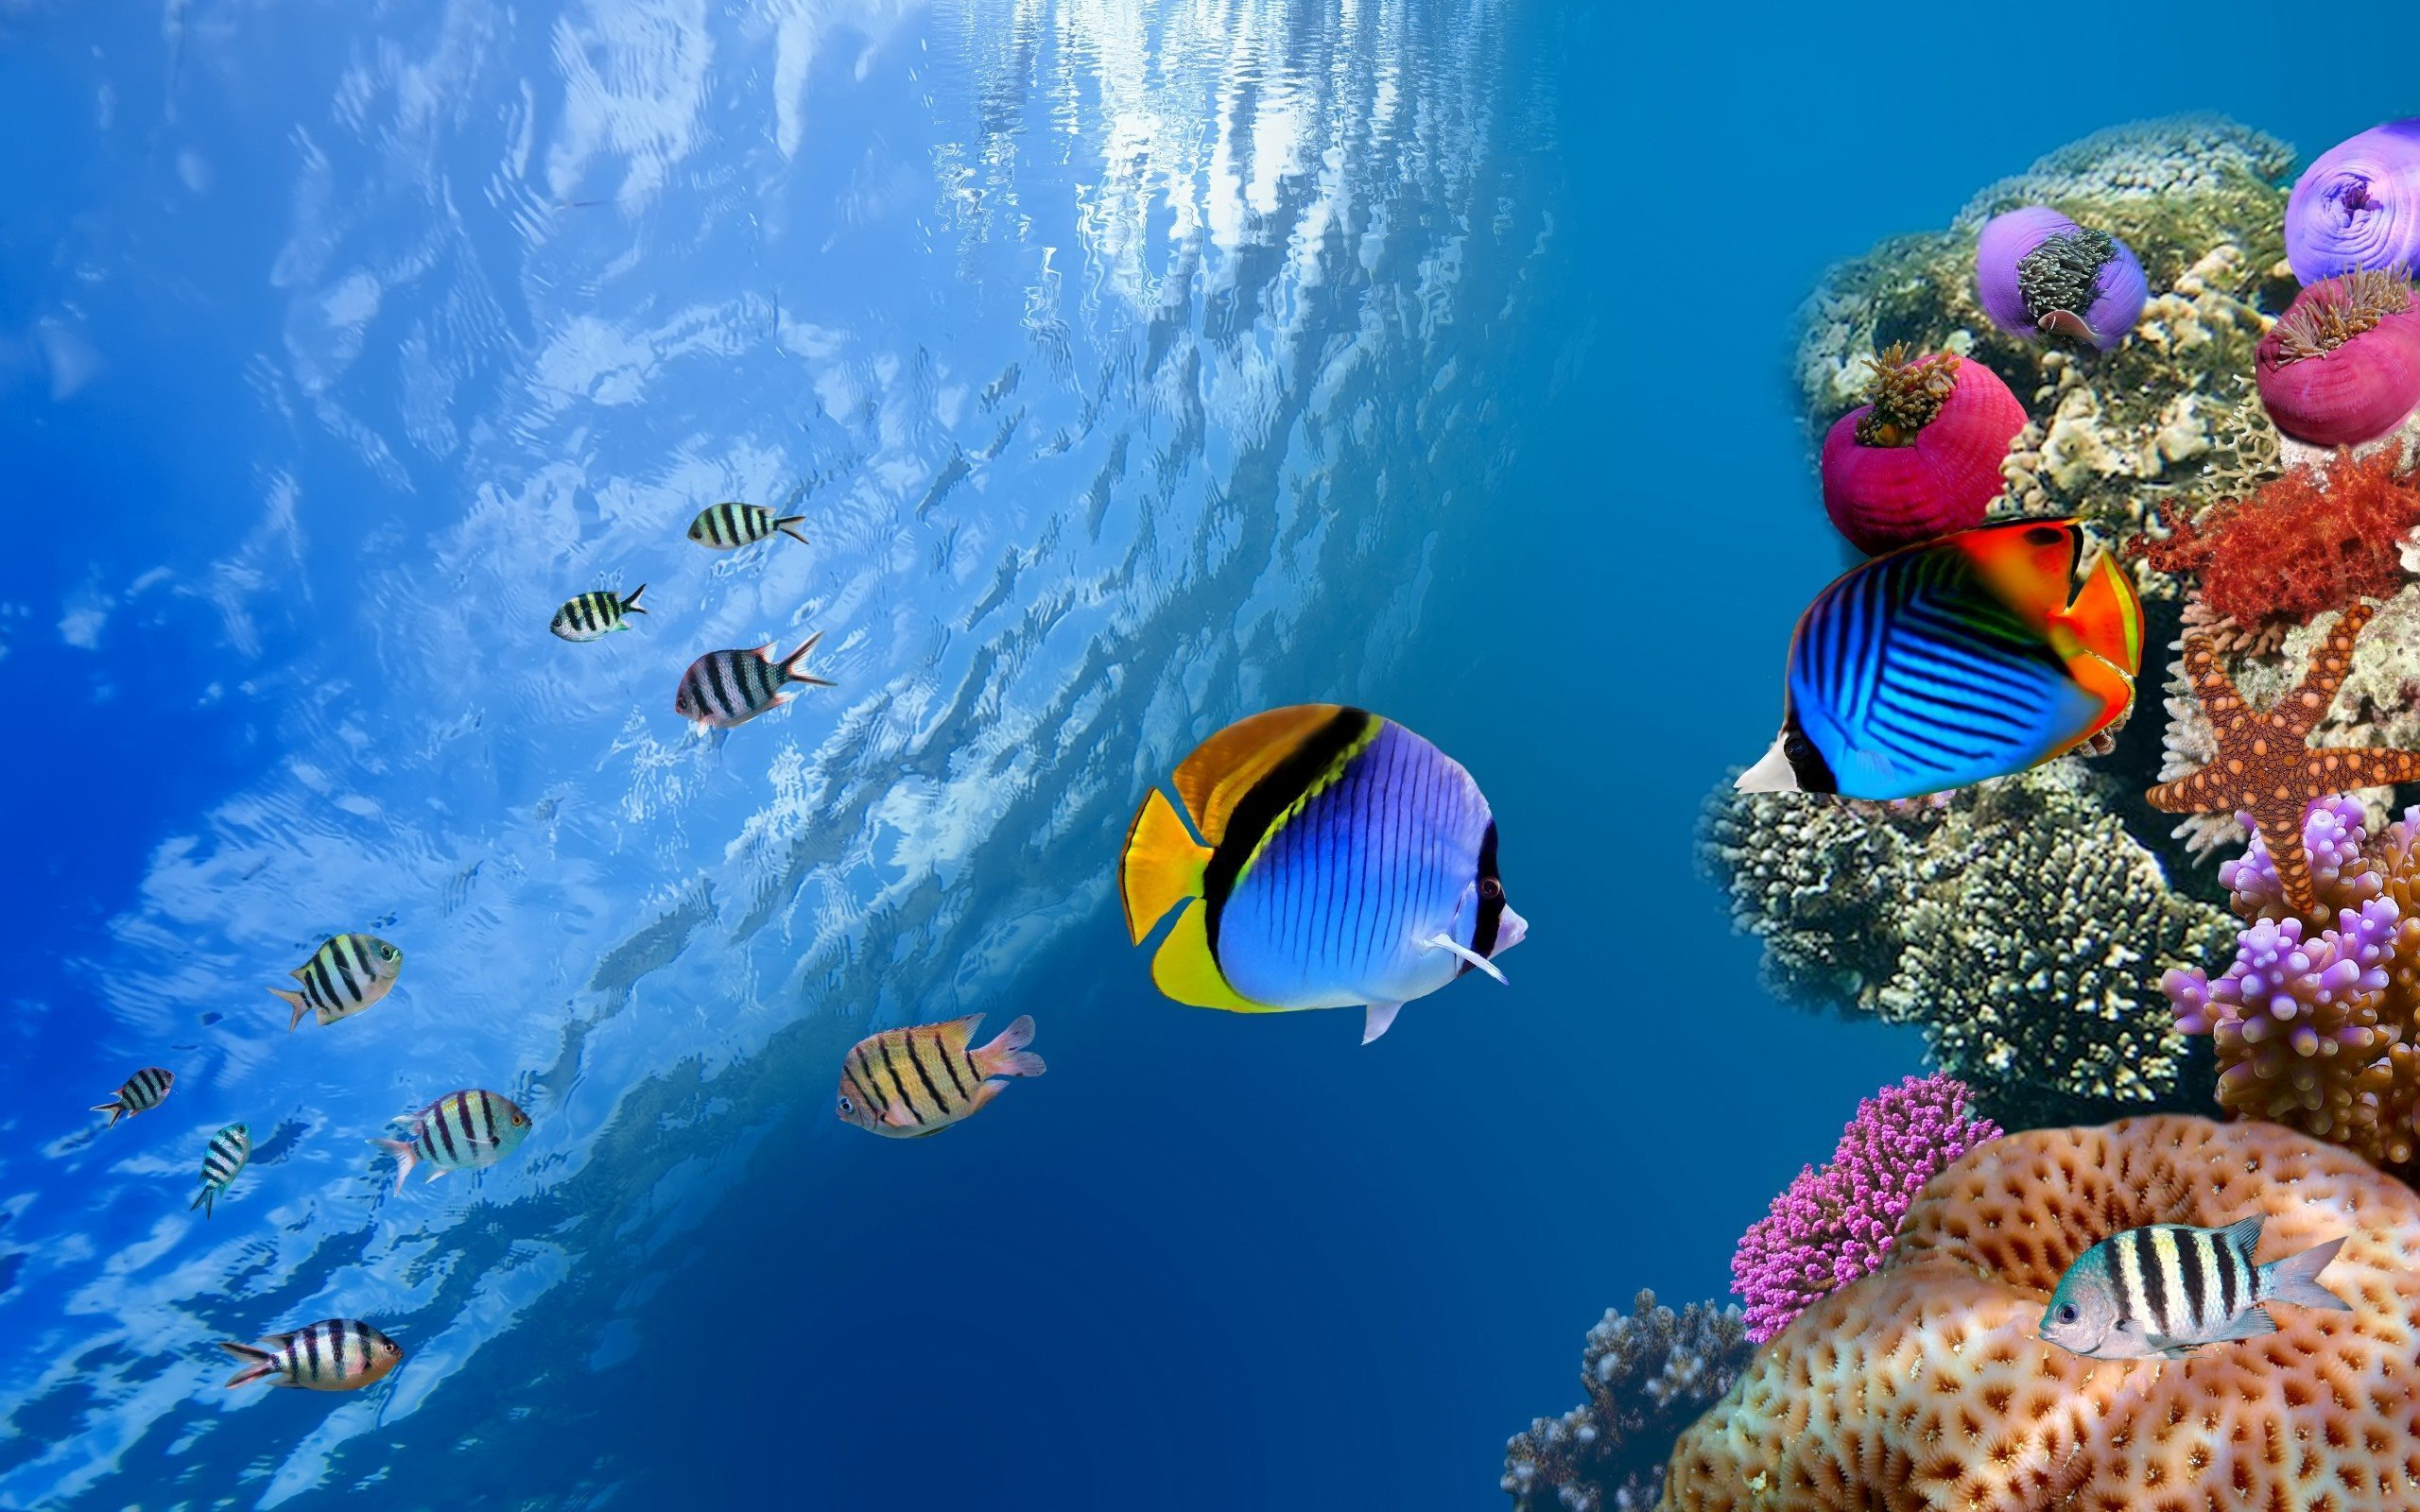 Corals And Fishes HD Wallpaper Nature Wallpapers 2560x1600